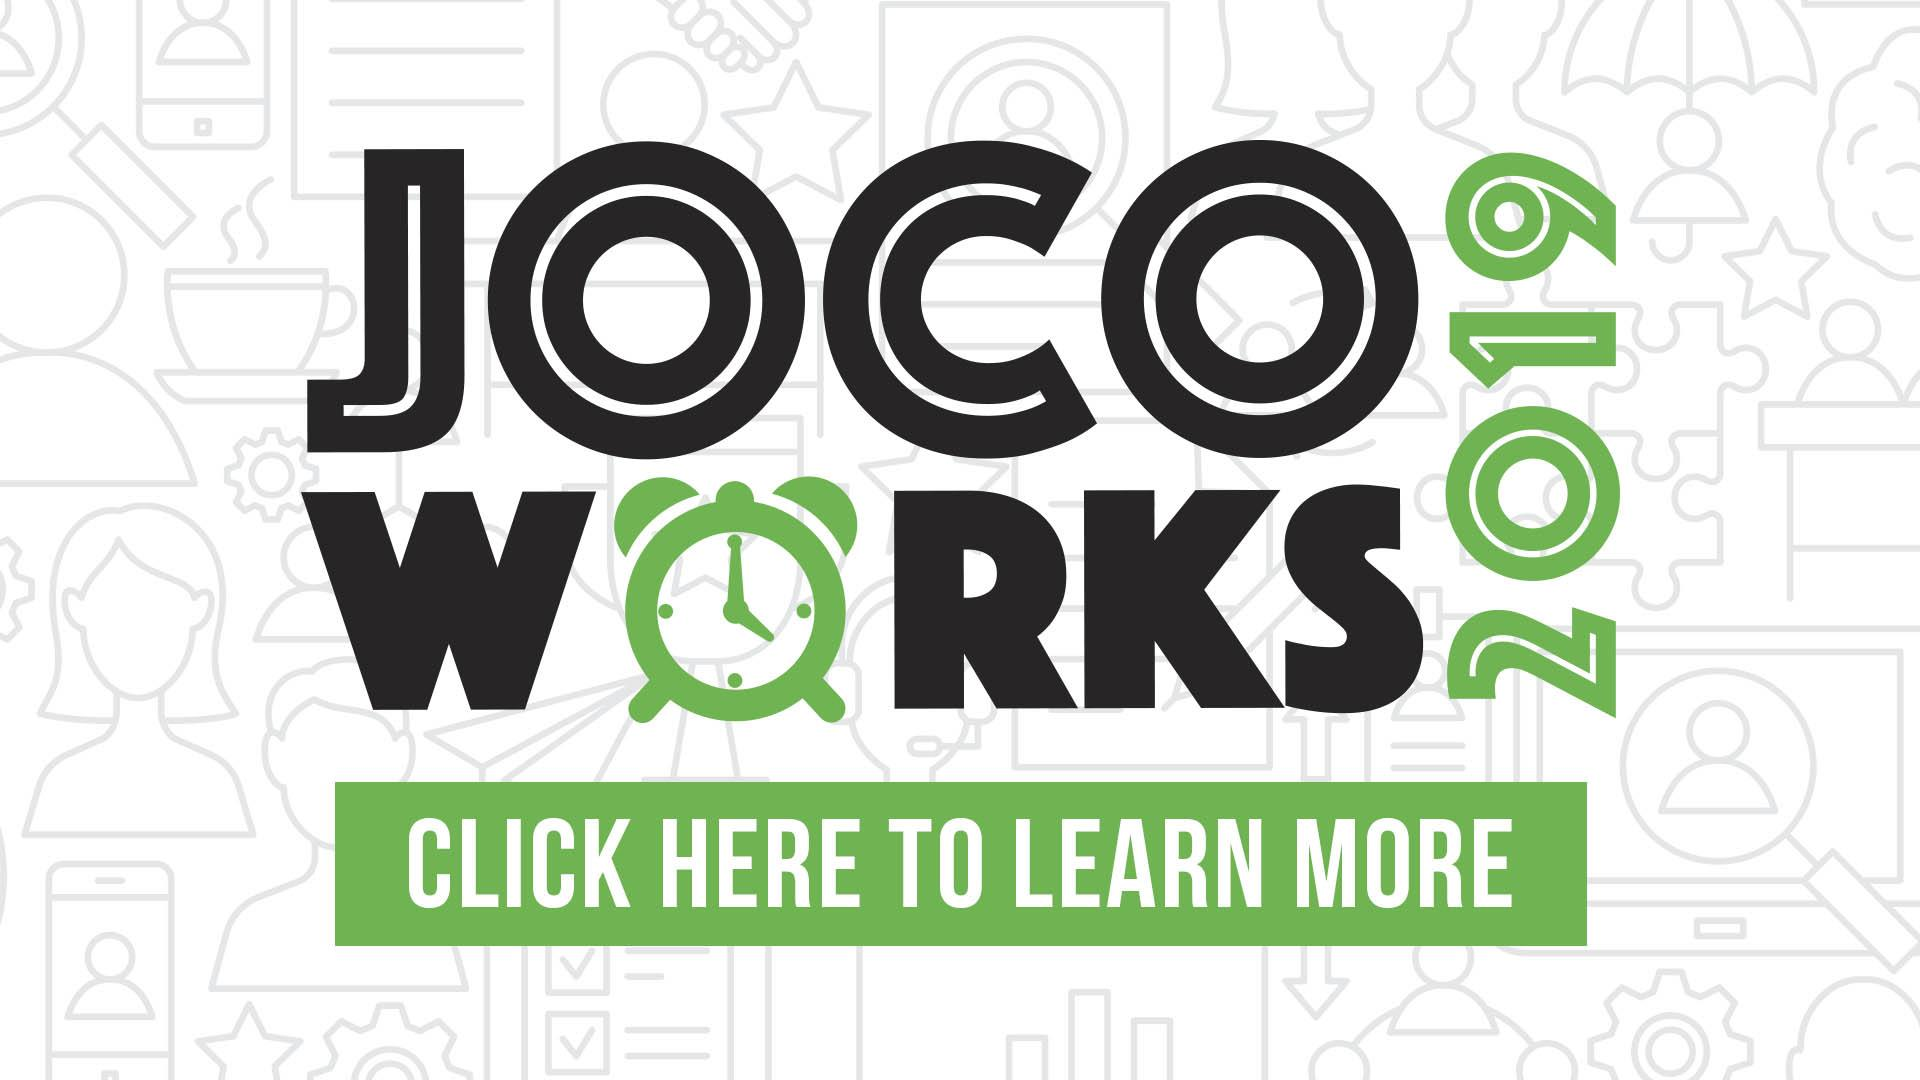 JoCo Works 2019. Click here to learn more.